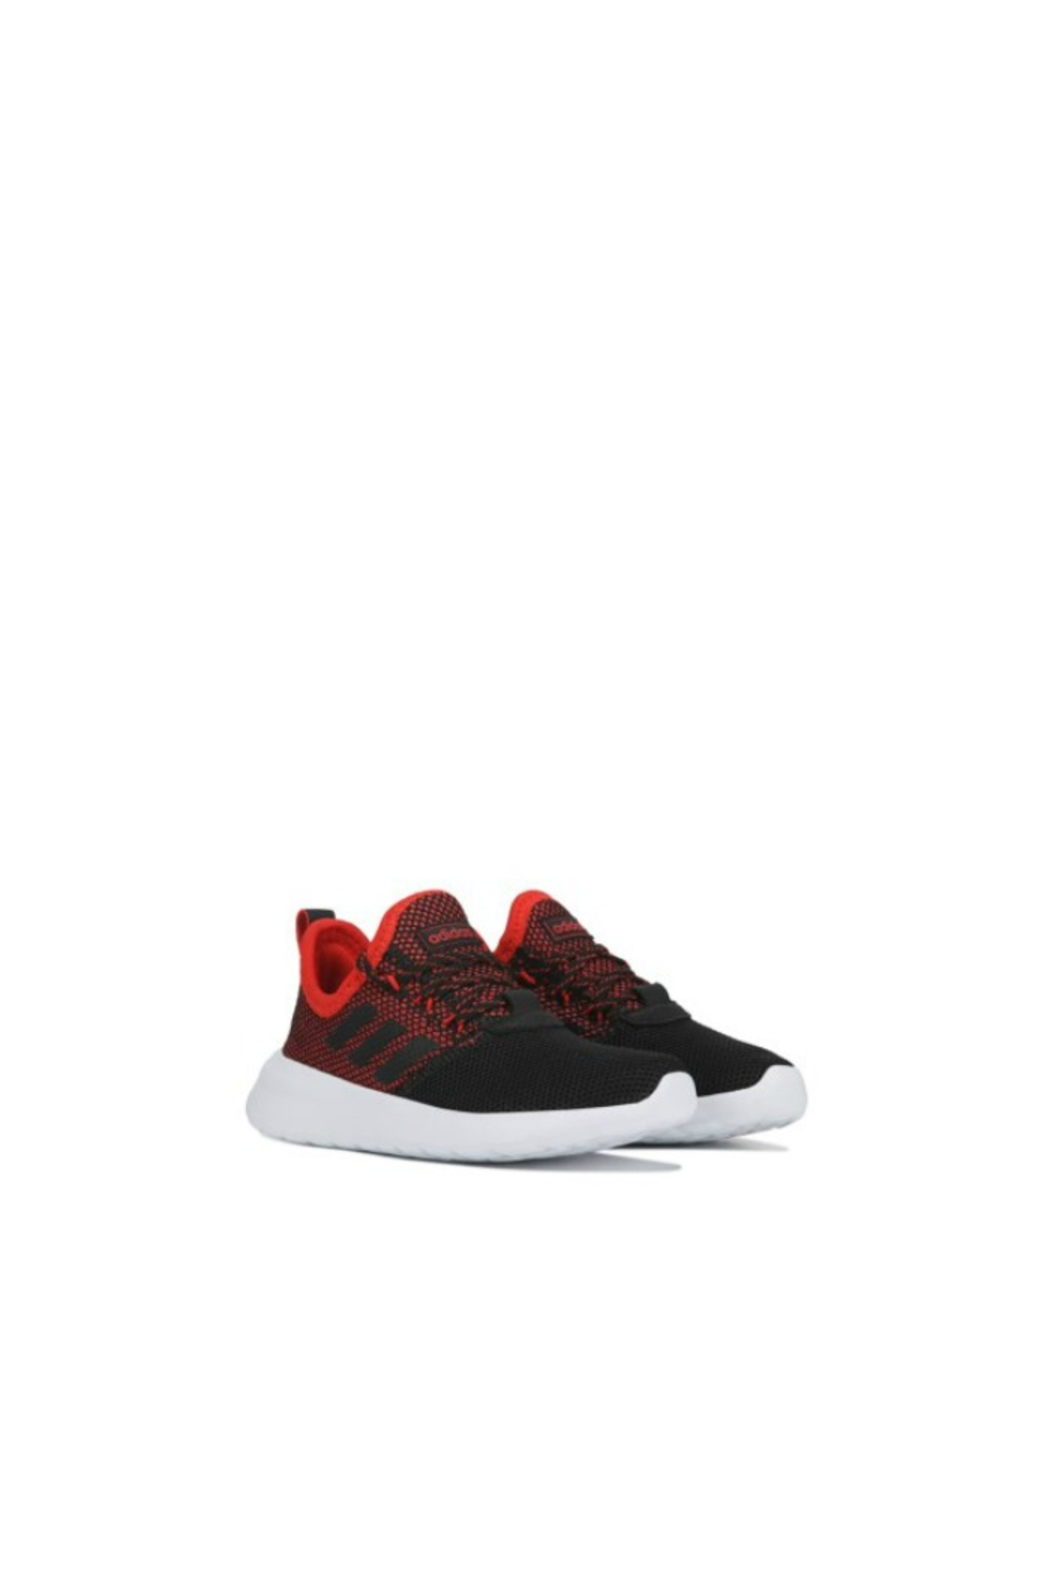 adidas Adidas Lite Racer RBN from New Jersey by Suburban